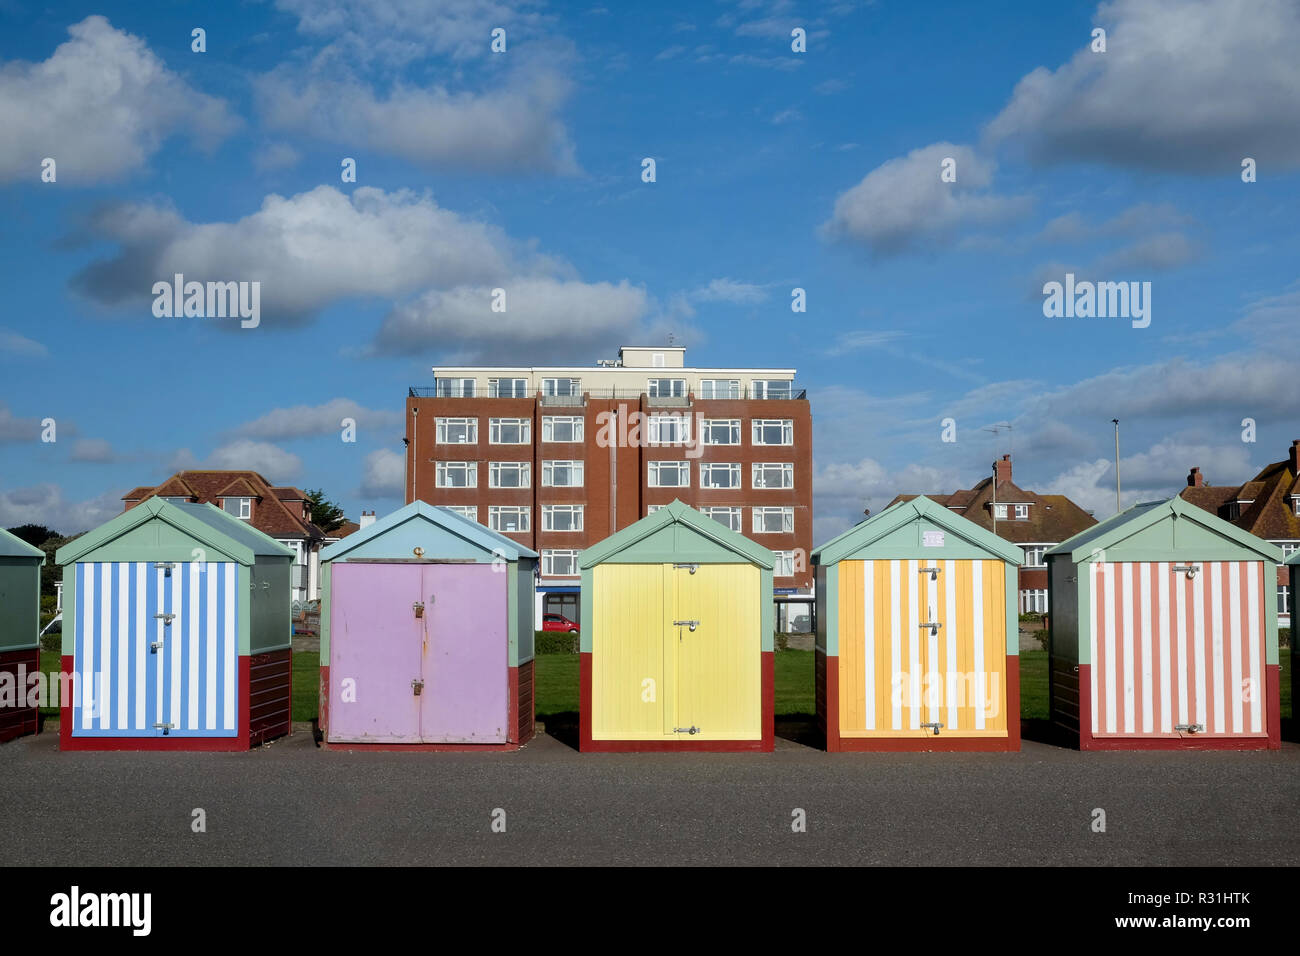 Brighton seafront five beach huts, with multi coloured doors of yellow, pink, black stripes behind is an appartment building and blue sky Stock Photo